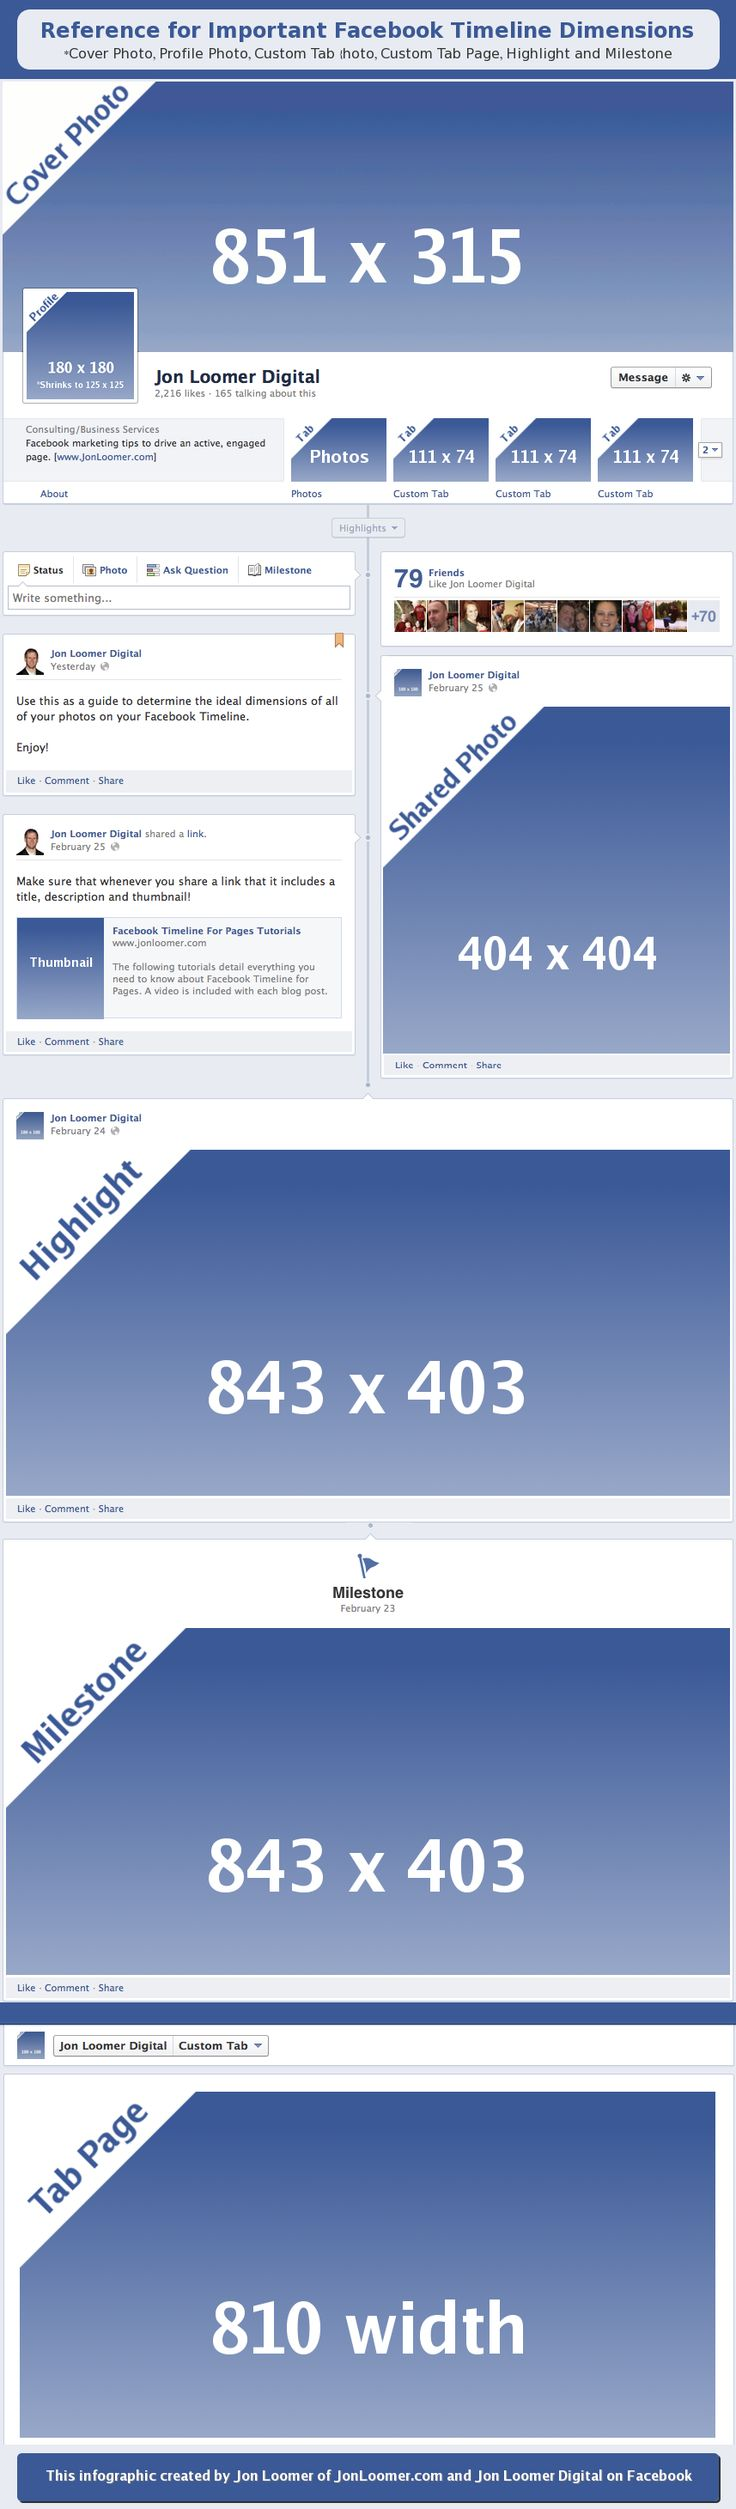 Facebook Timeline for Pages - Cheat Sheet: Sizes and Dimensions of Cover